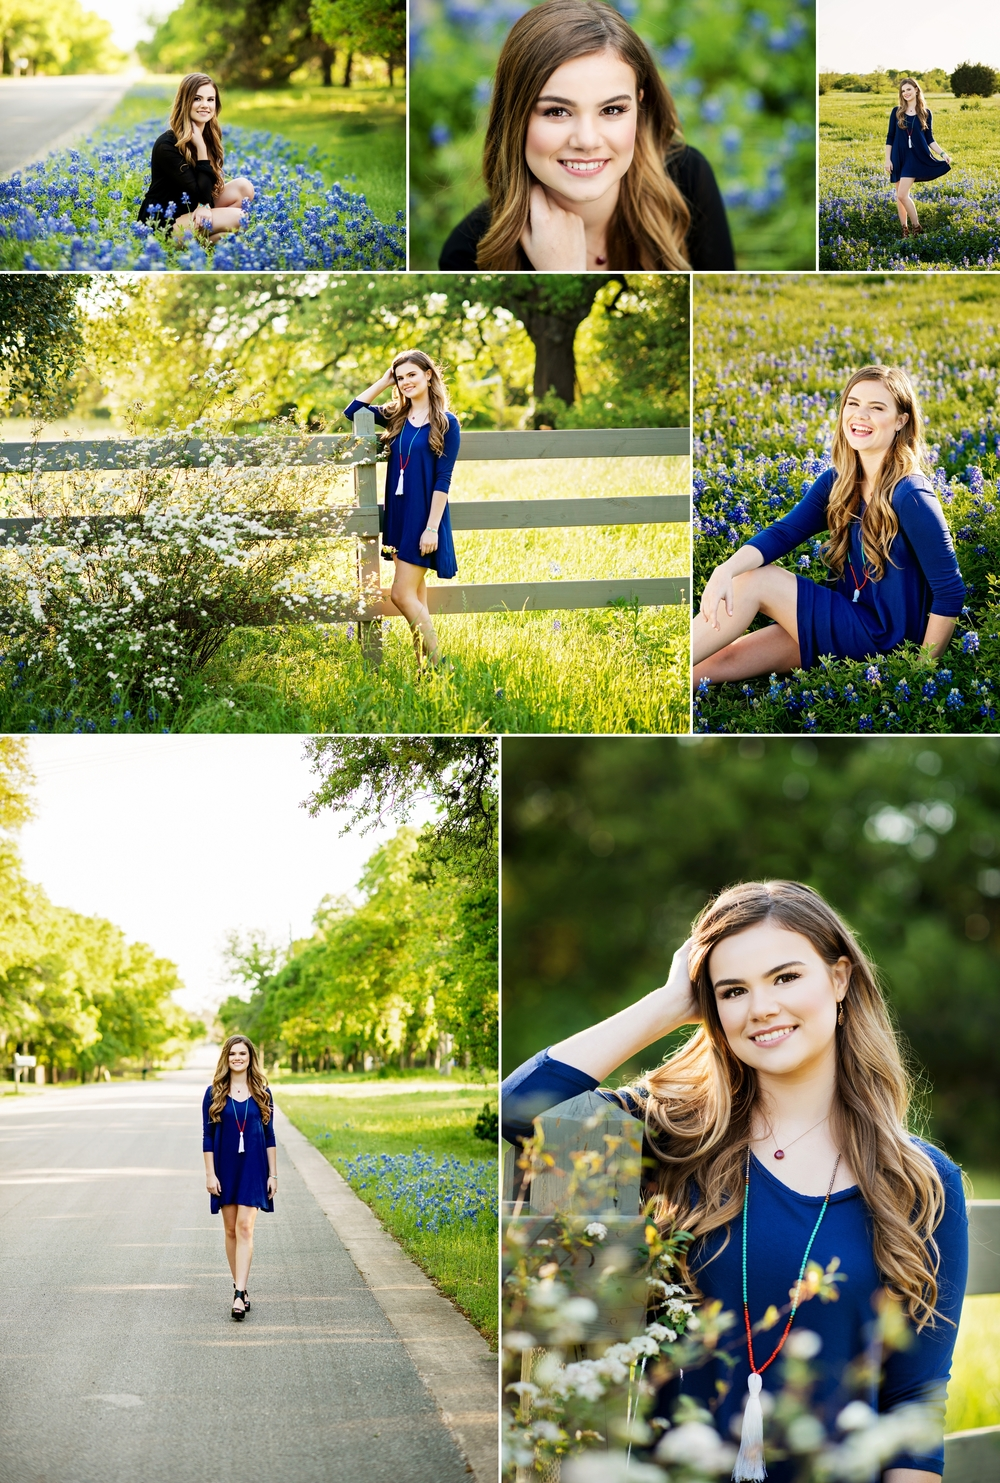 Austin Senior Portrait photography ideas